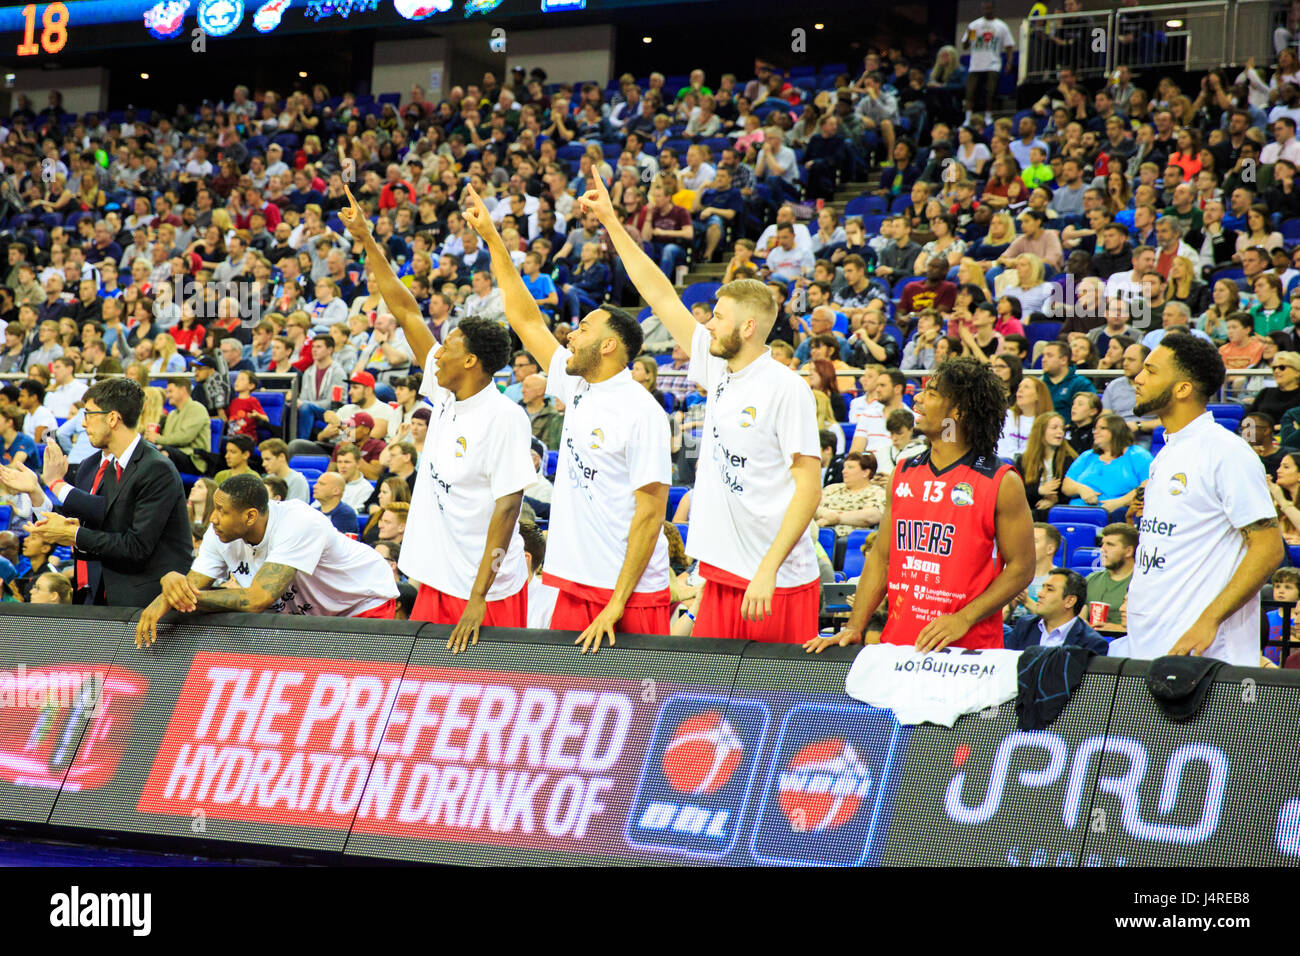 O2 Arena, London, UK, 14th May 2017. The Riders bench. Tensions run high at the BBL basketball  Playoff Final 2017 - Stock Image